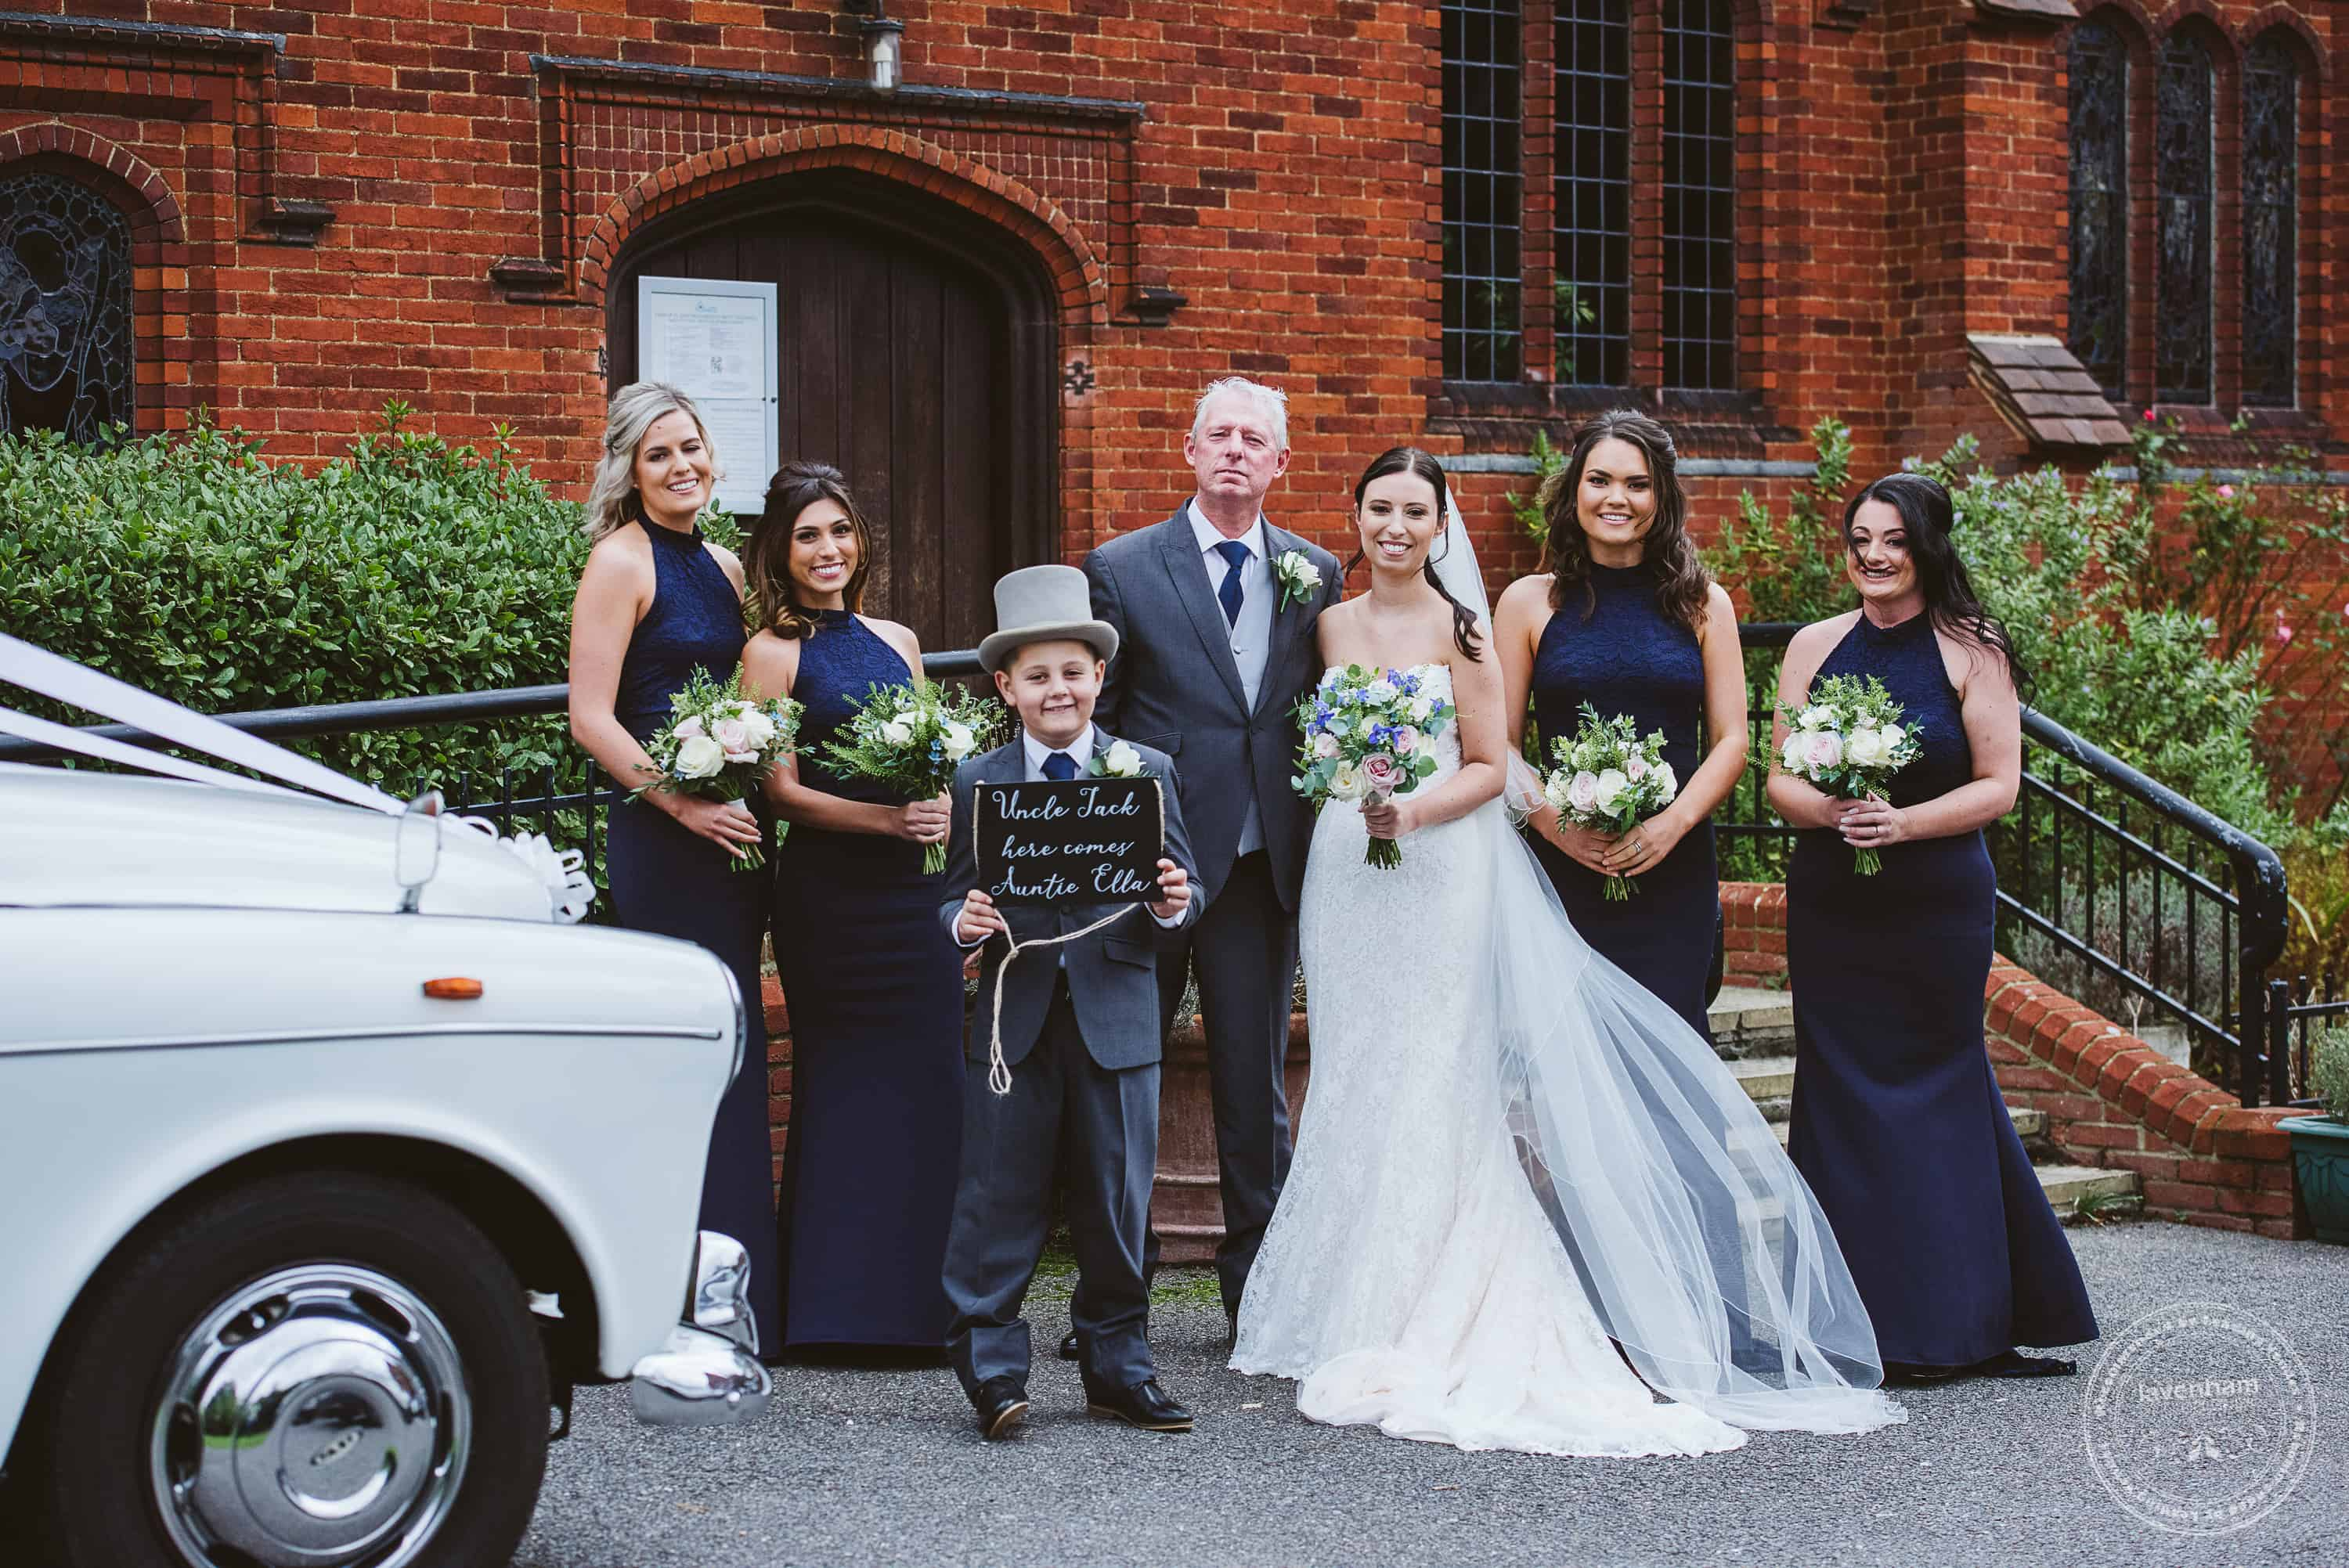 261019 Bull and Willow Room Essex Wedding Photographer 022